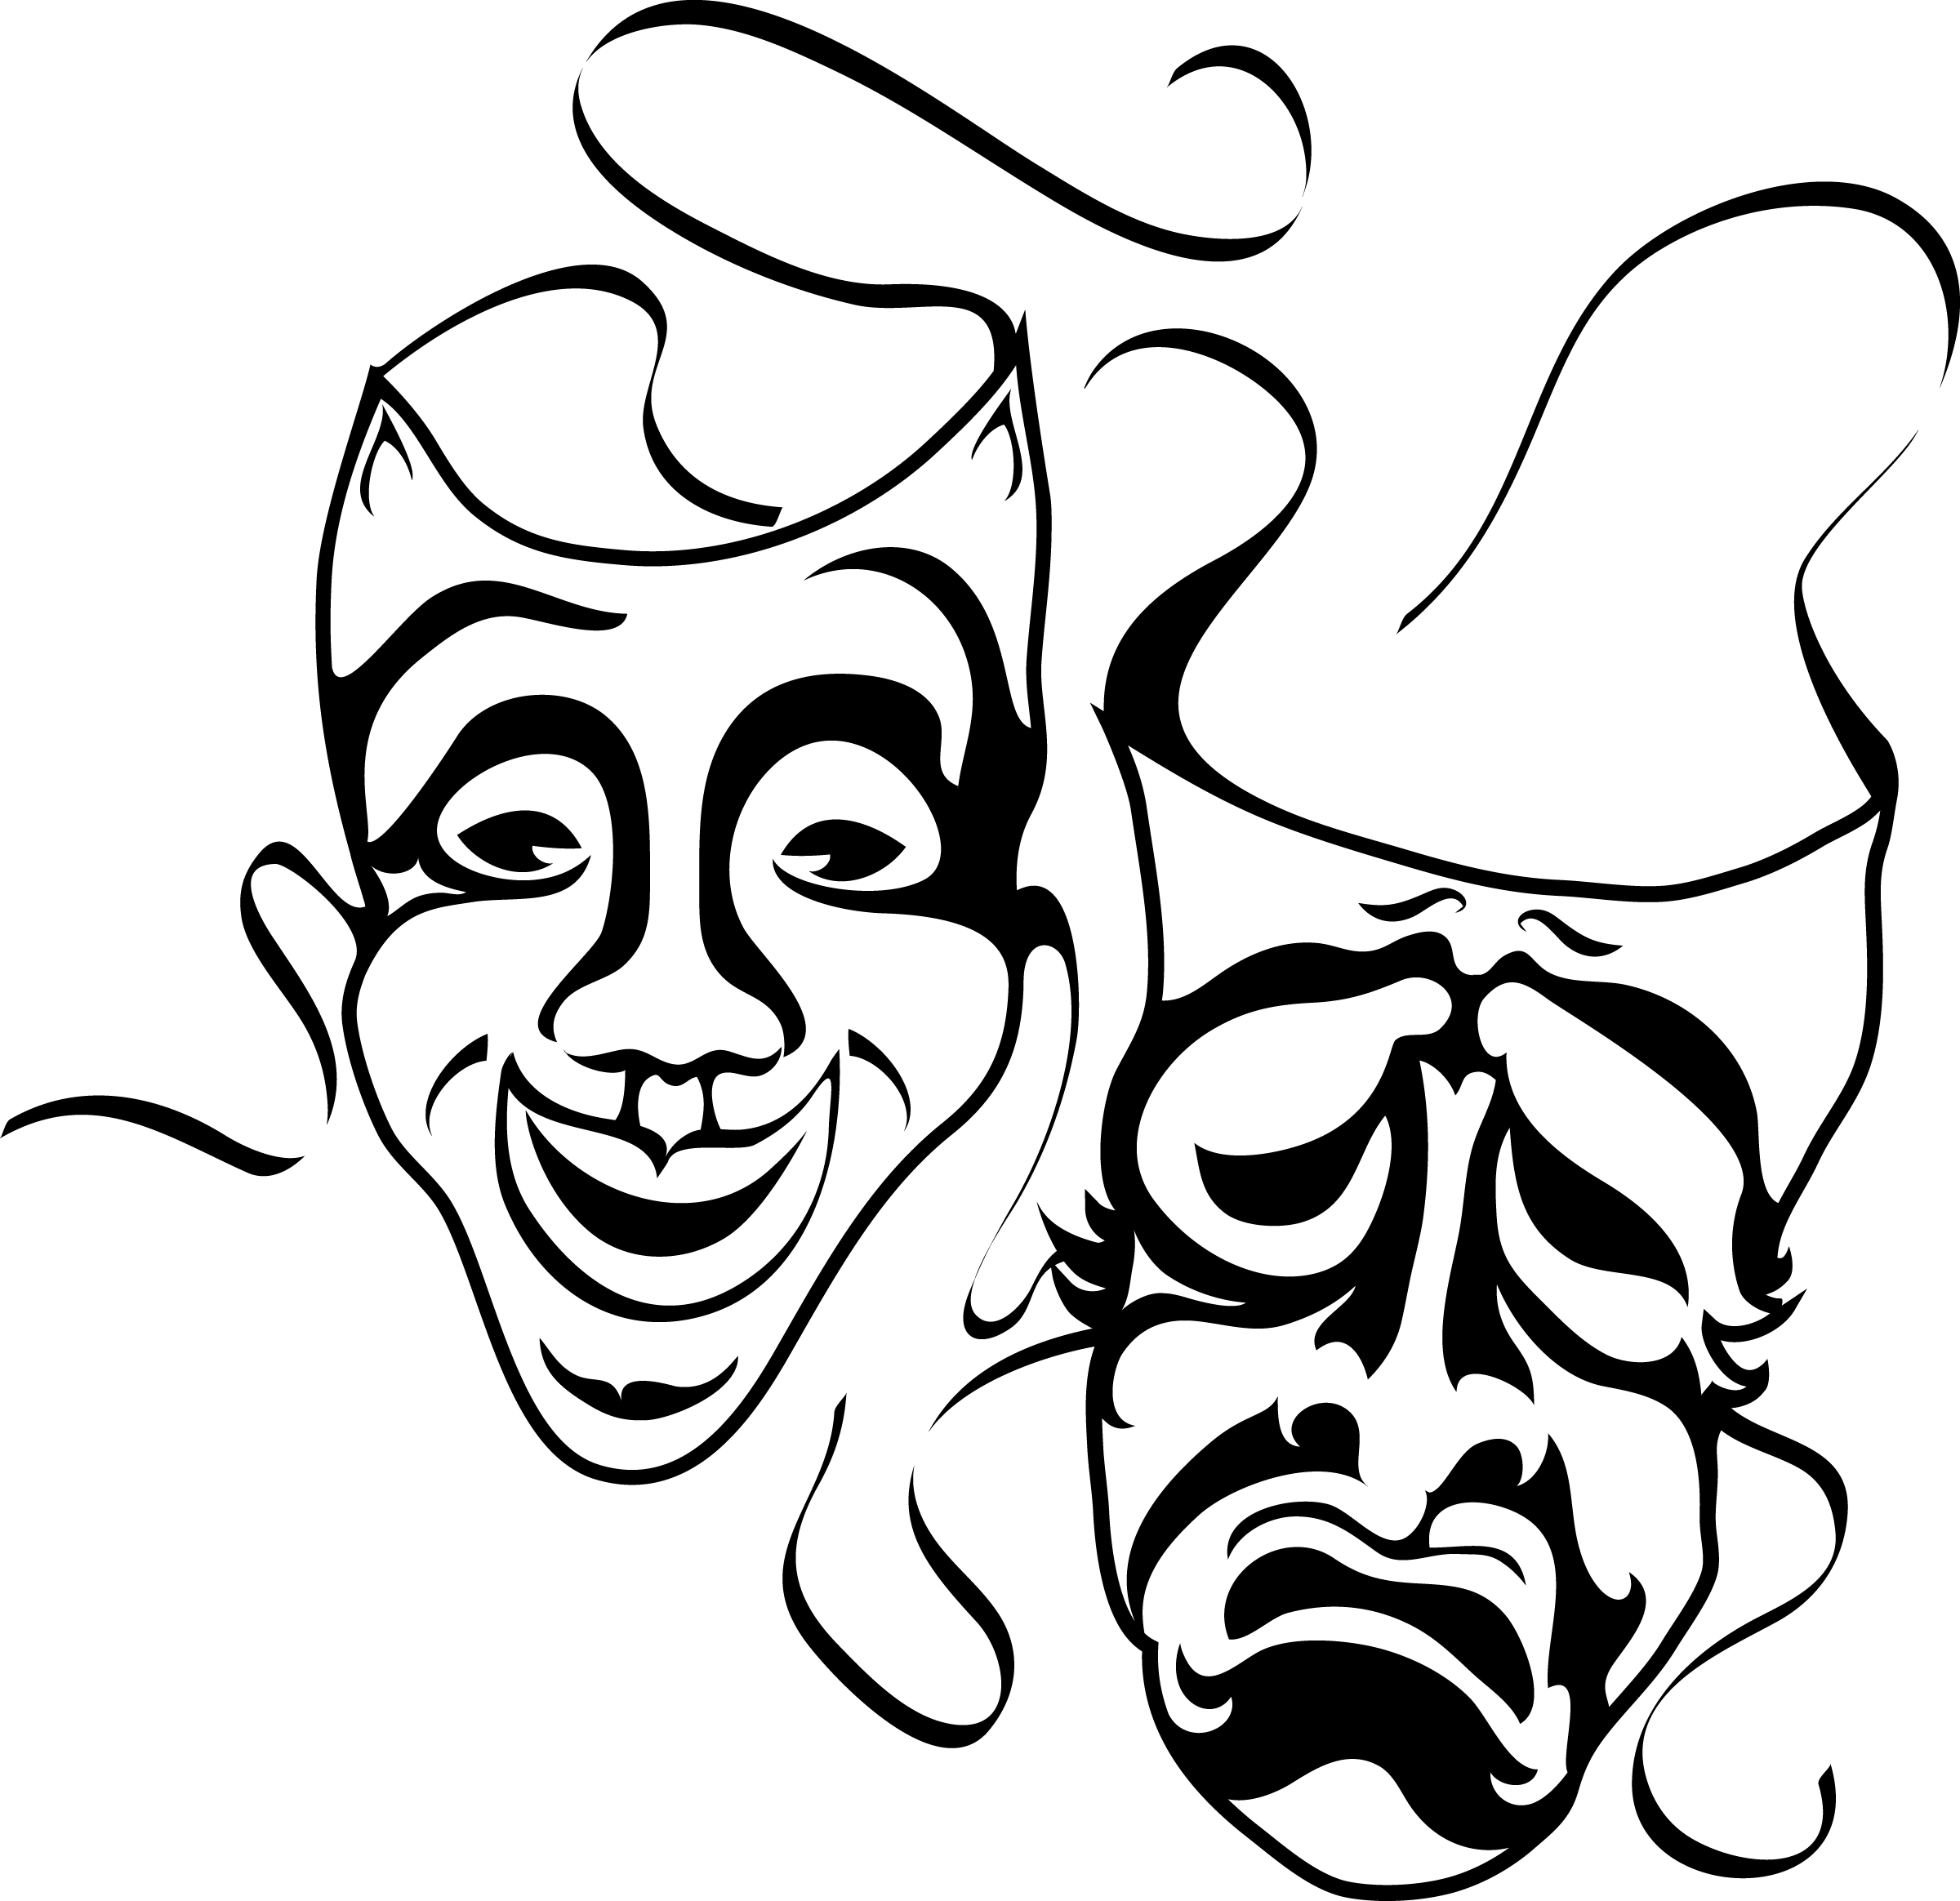 Theatre clipart theatre mask comedy tragedy On Masks Drama Free library